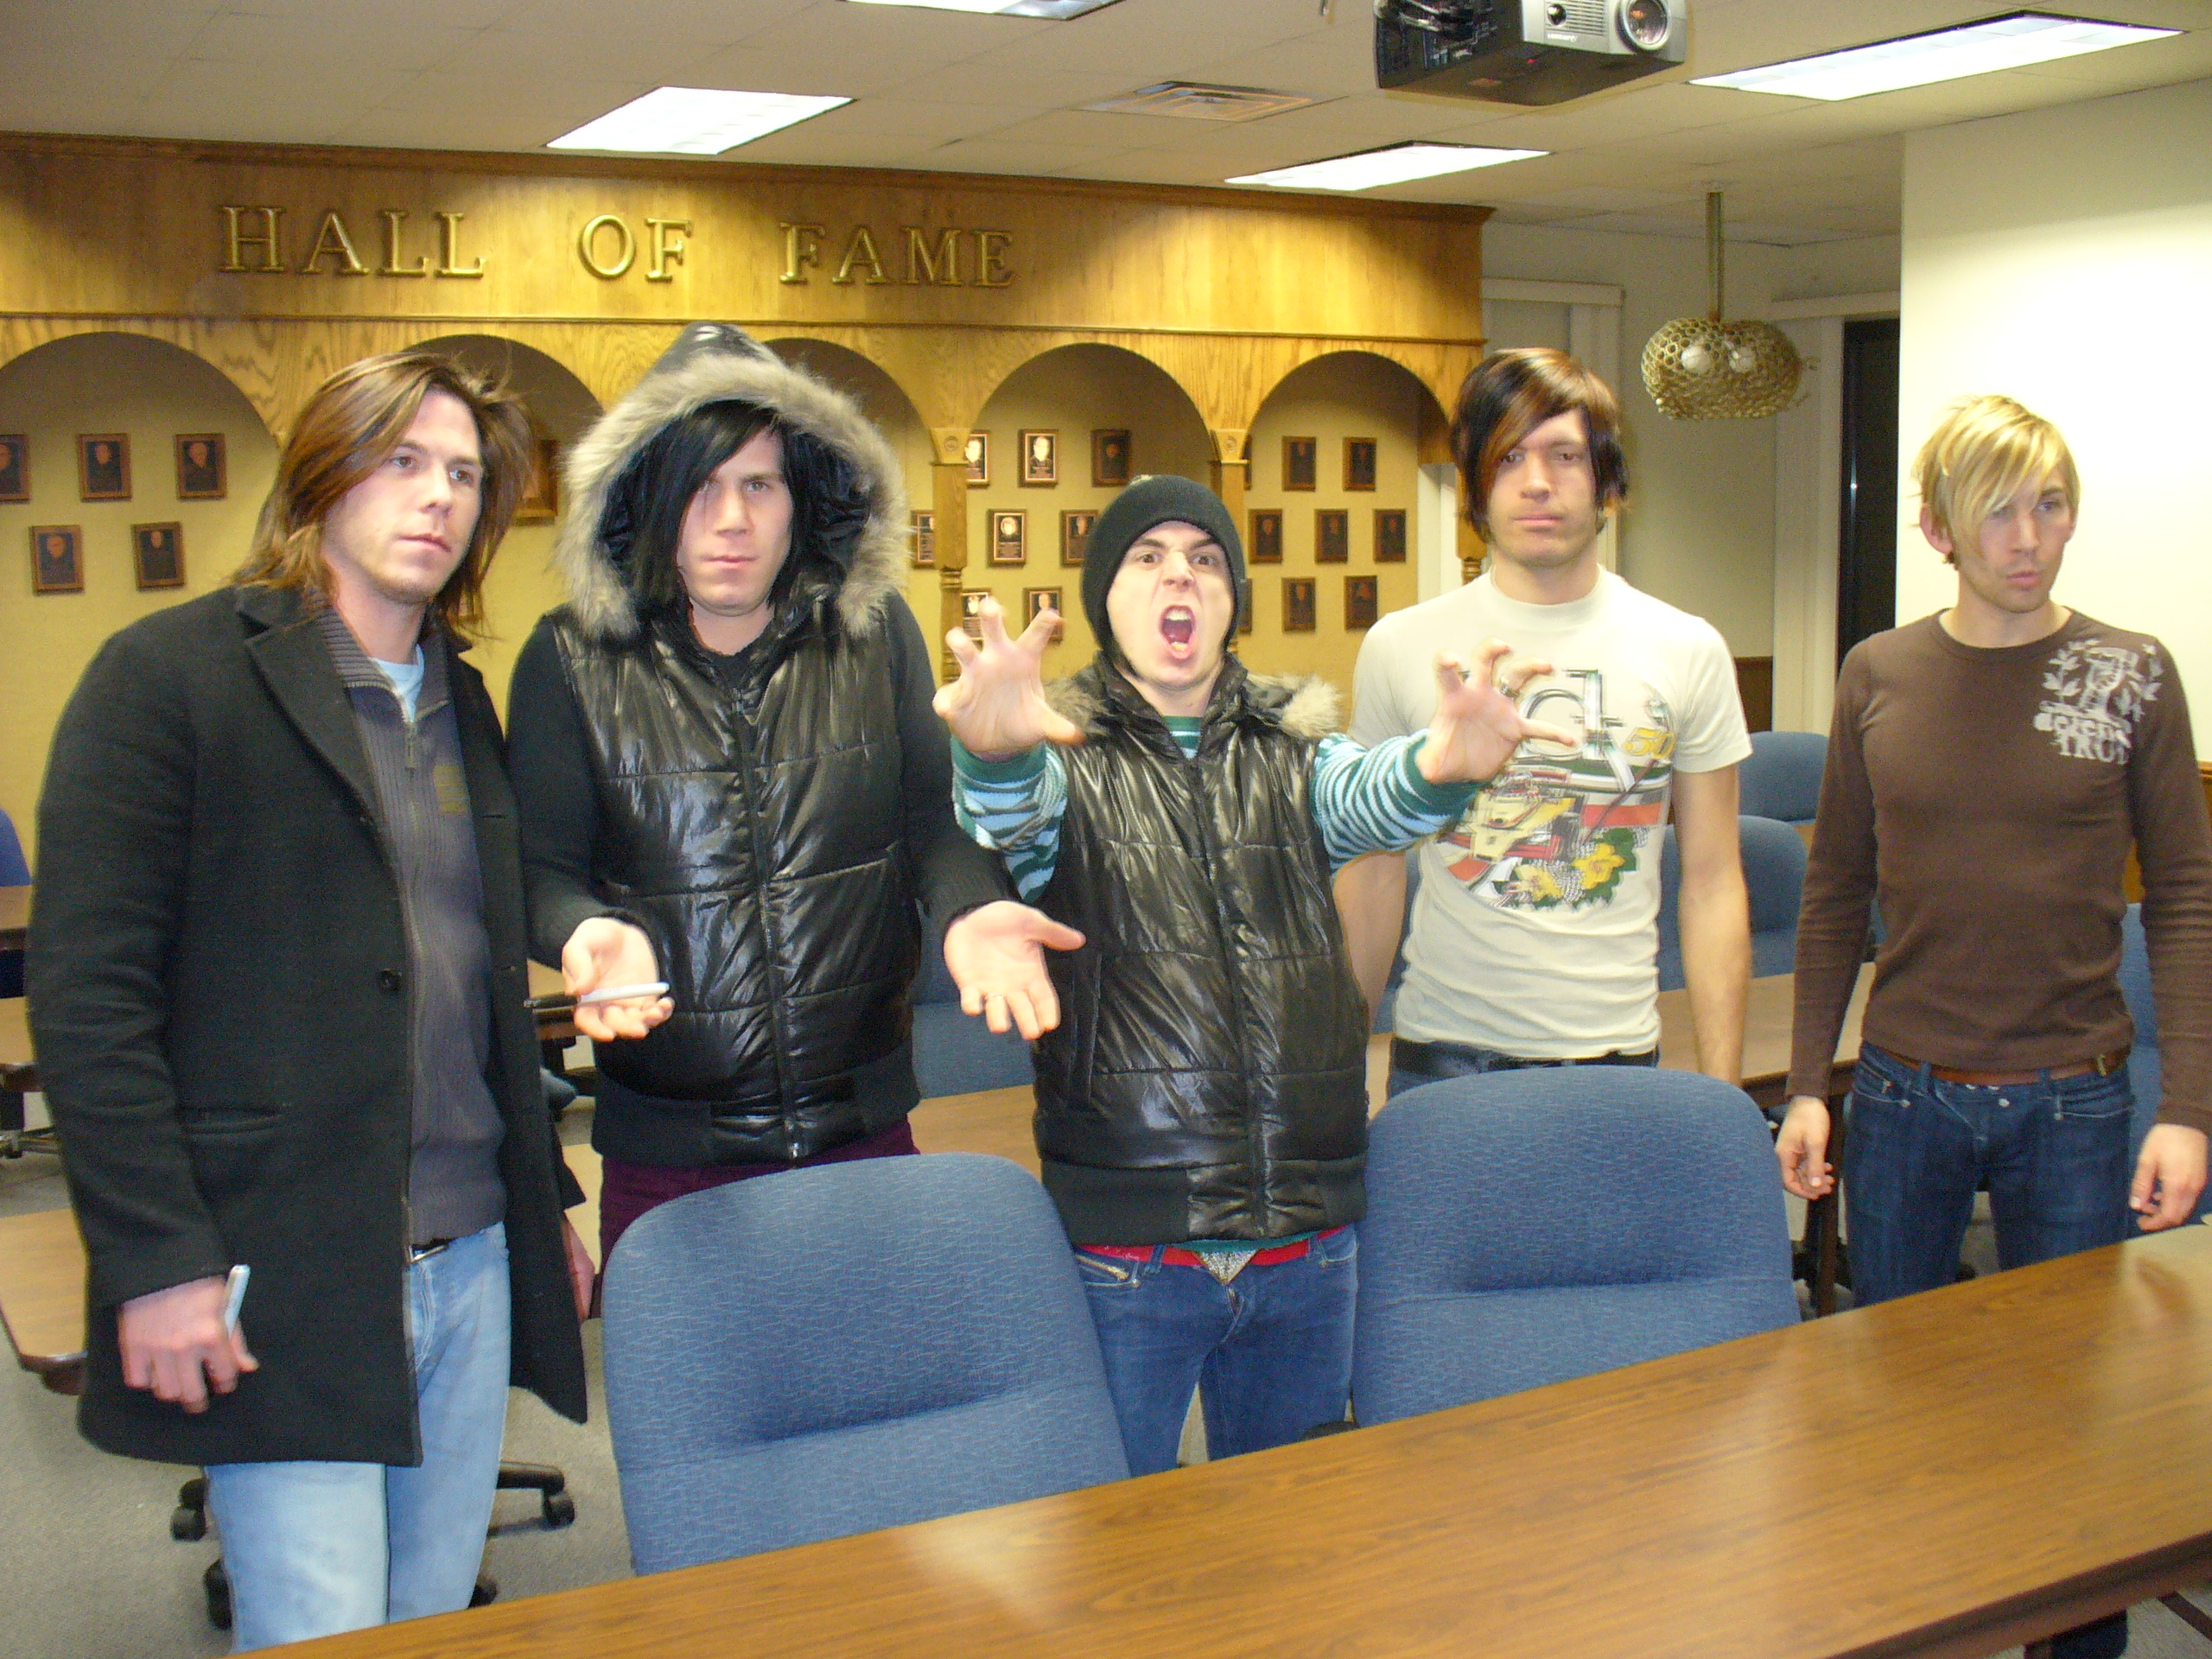 Family Force 5 - Wikipedia